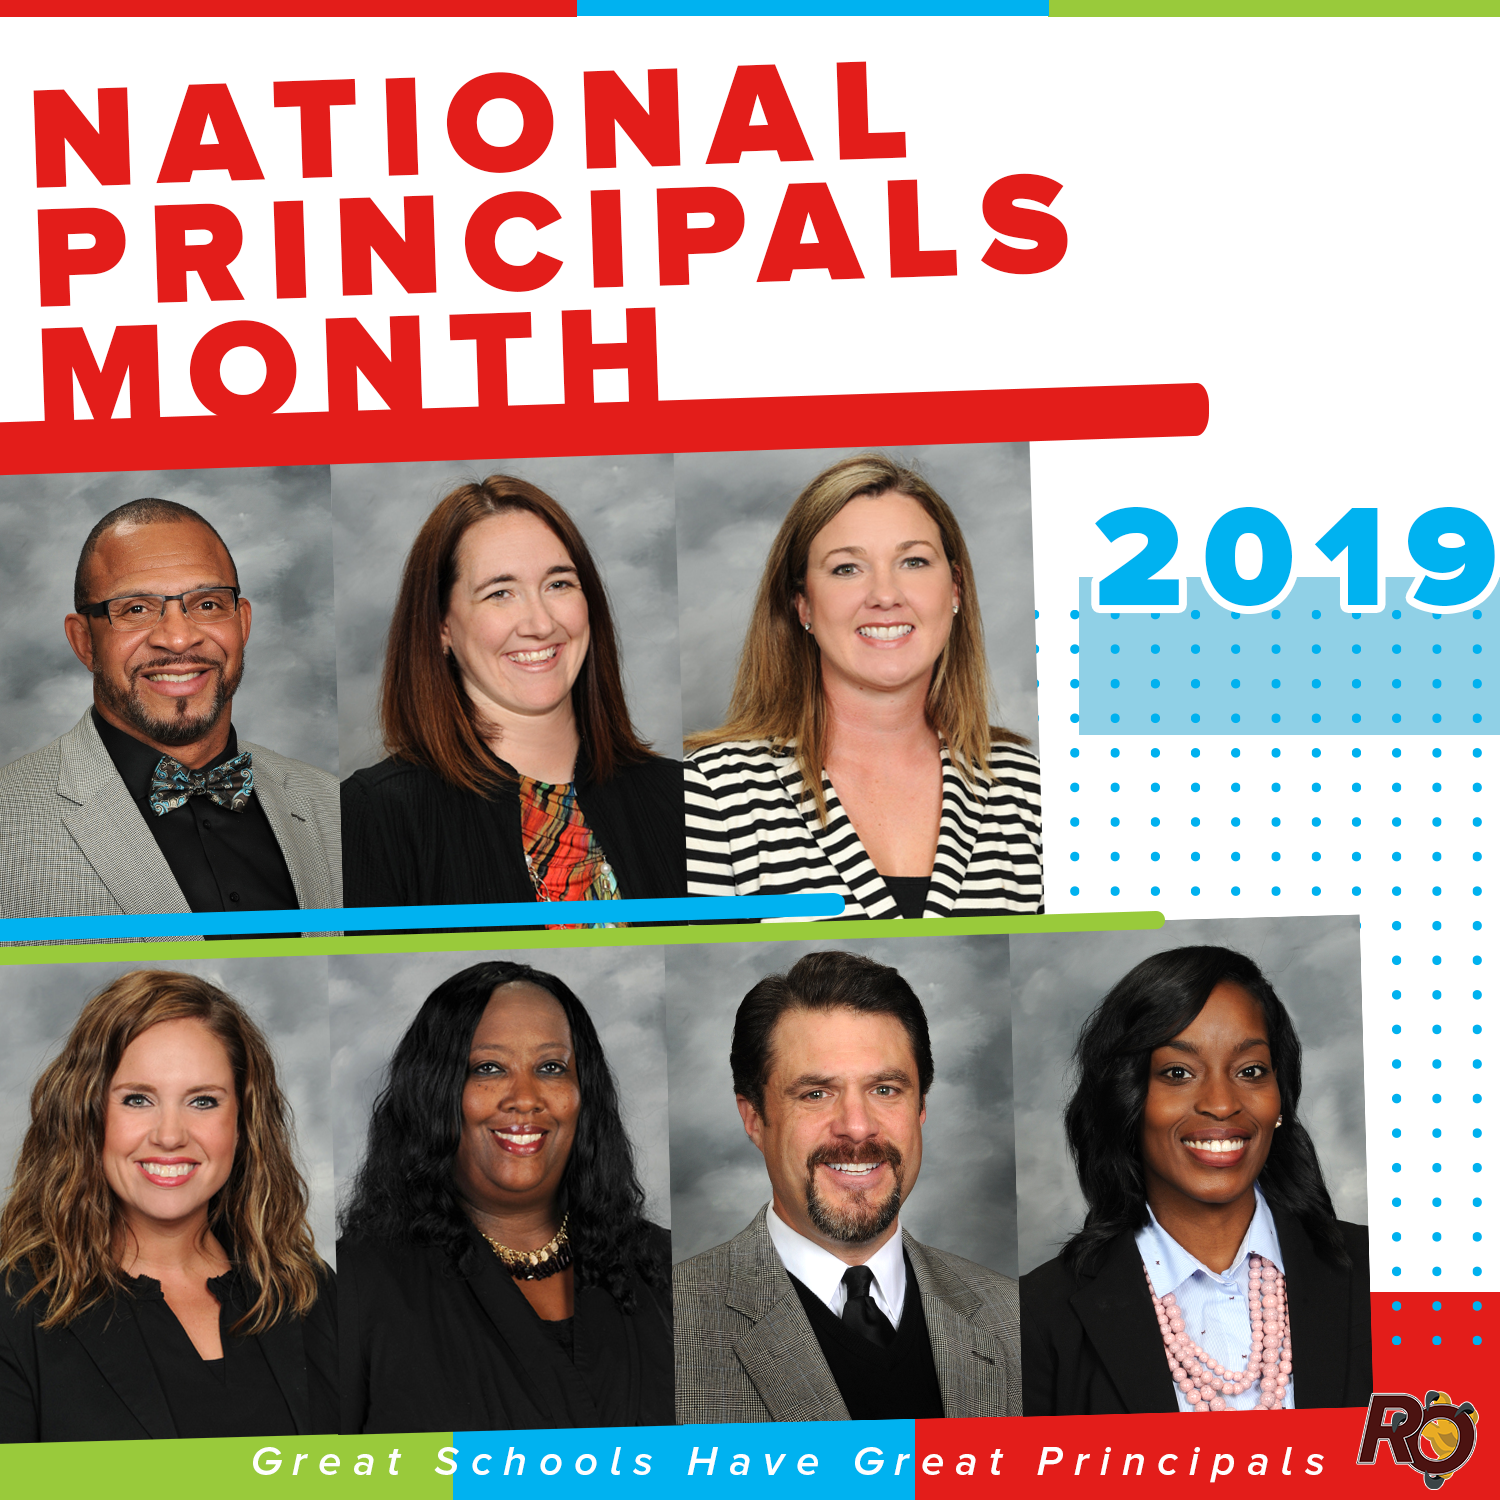 2019 National Principal Month-Great Schools have Great Principals-picture of each principal